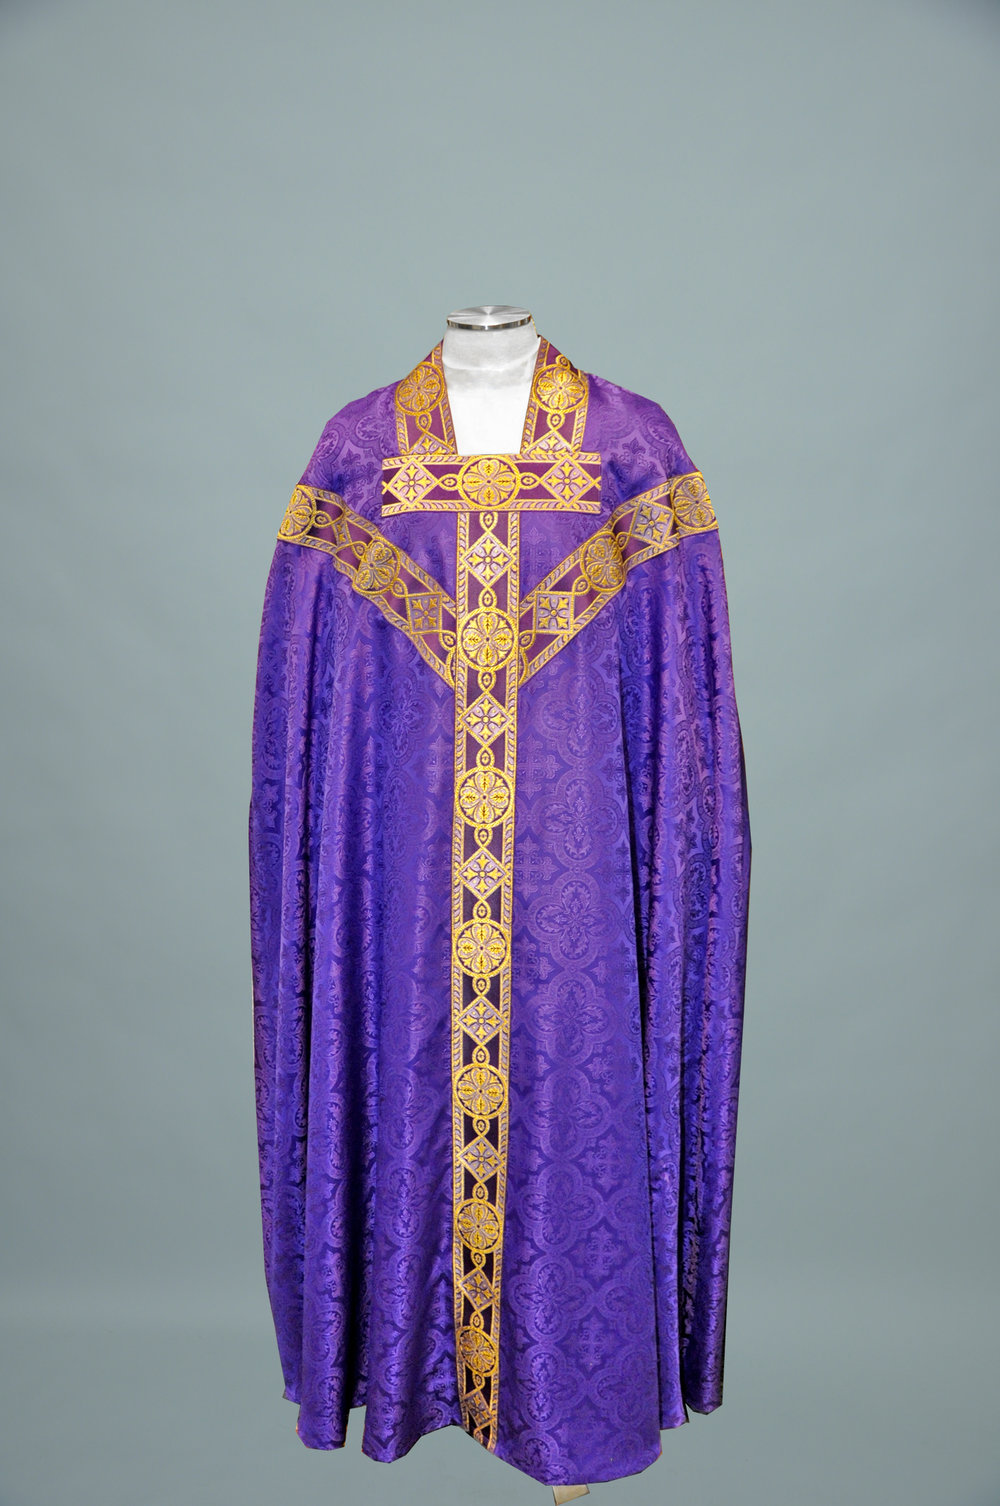 Conicle Chasuble Davinci Purple W 1180 Purple gold (f) 1.jpg